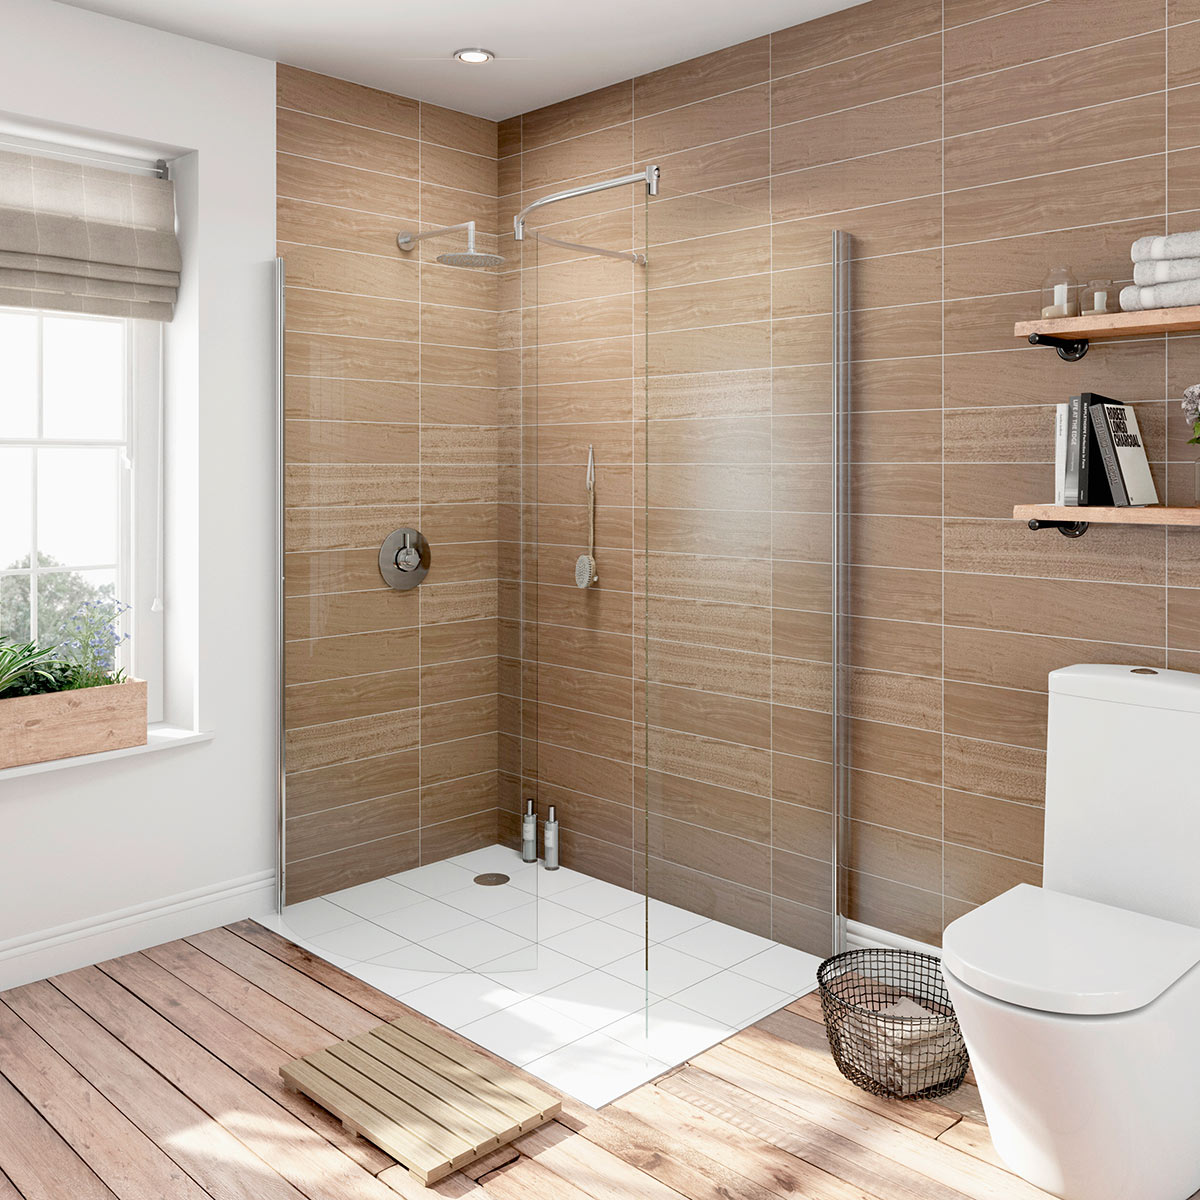 Design a walk-in shower